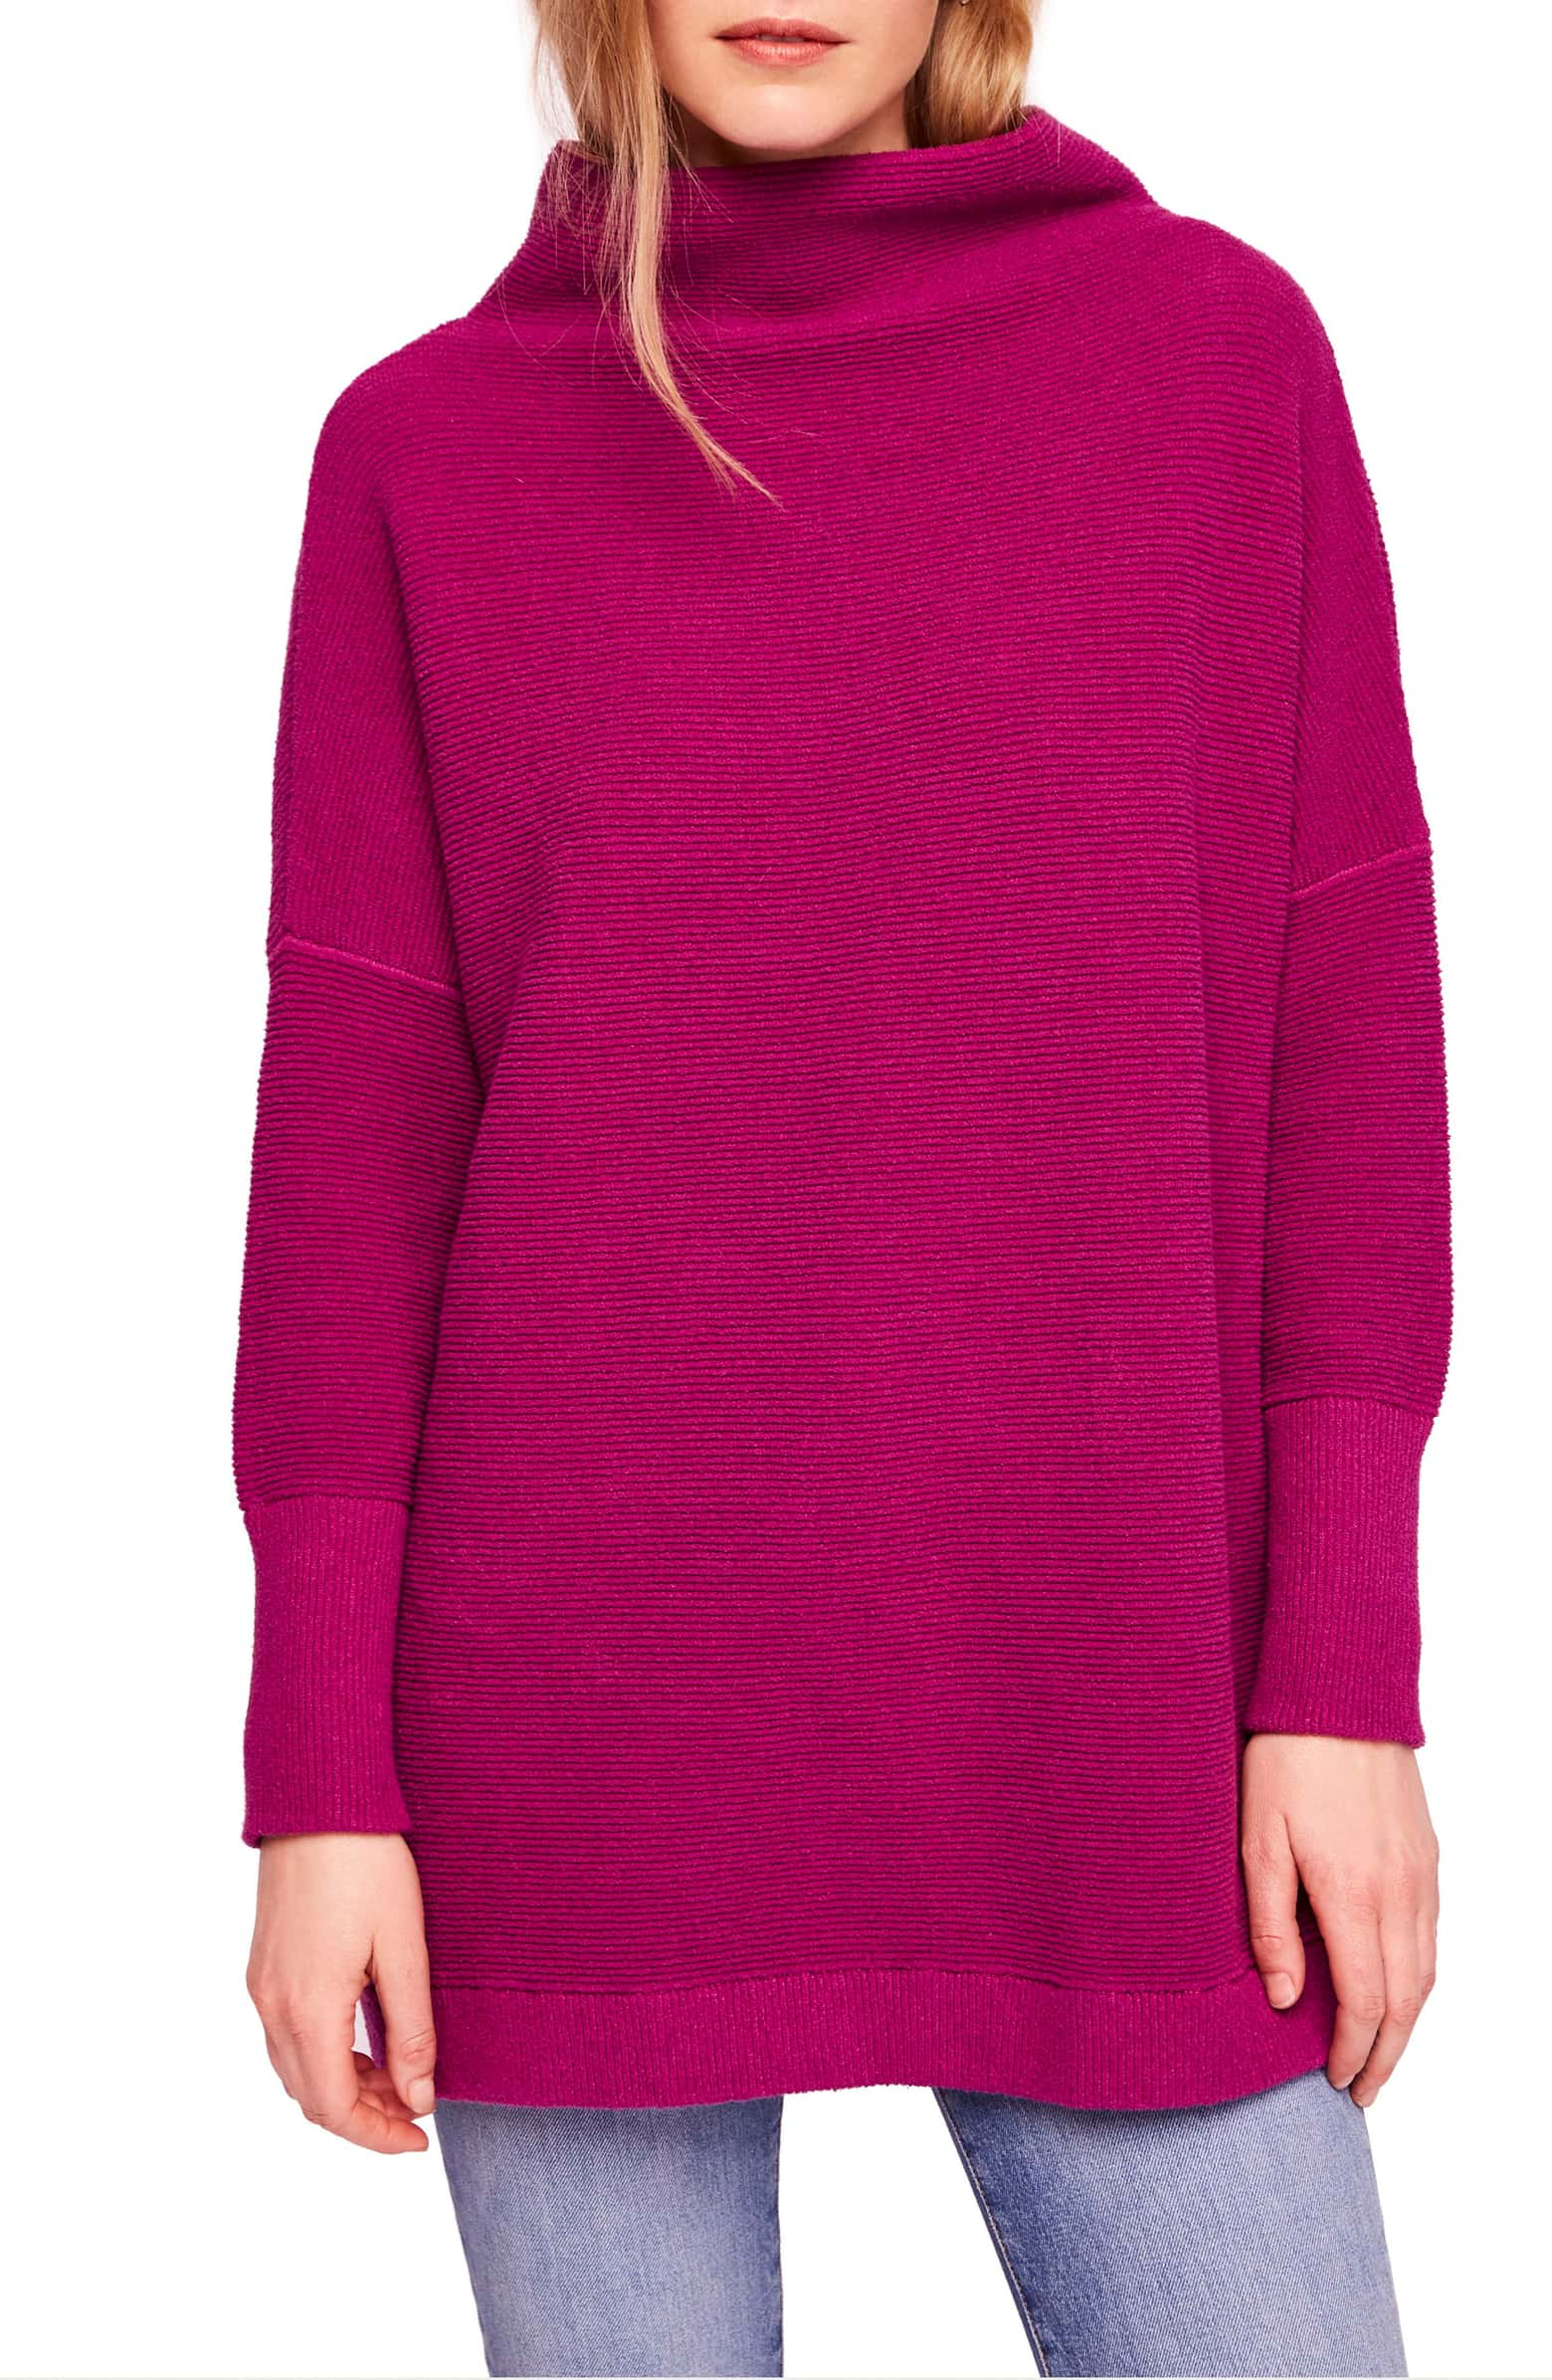 Free People Dark Pink sweater.jpeg